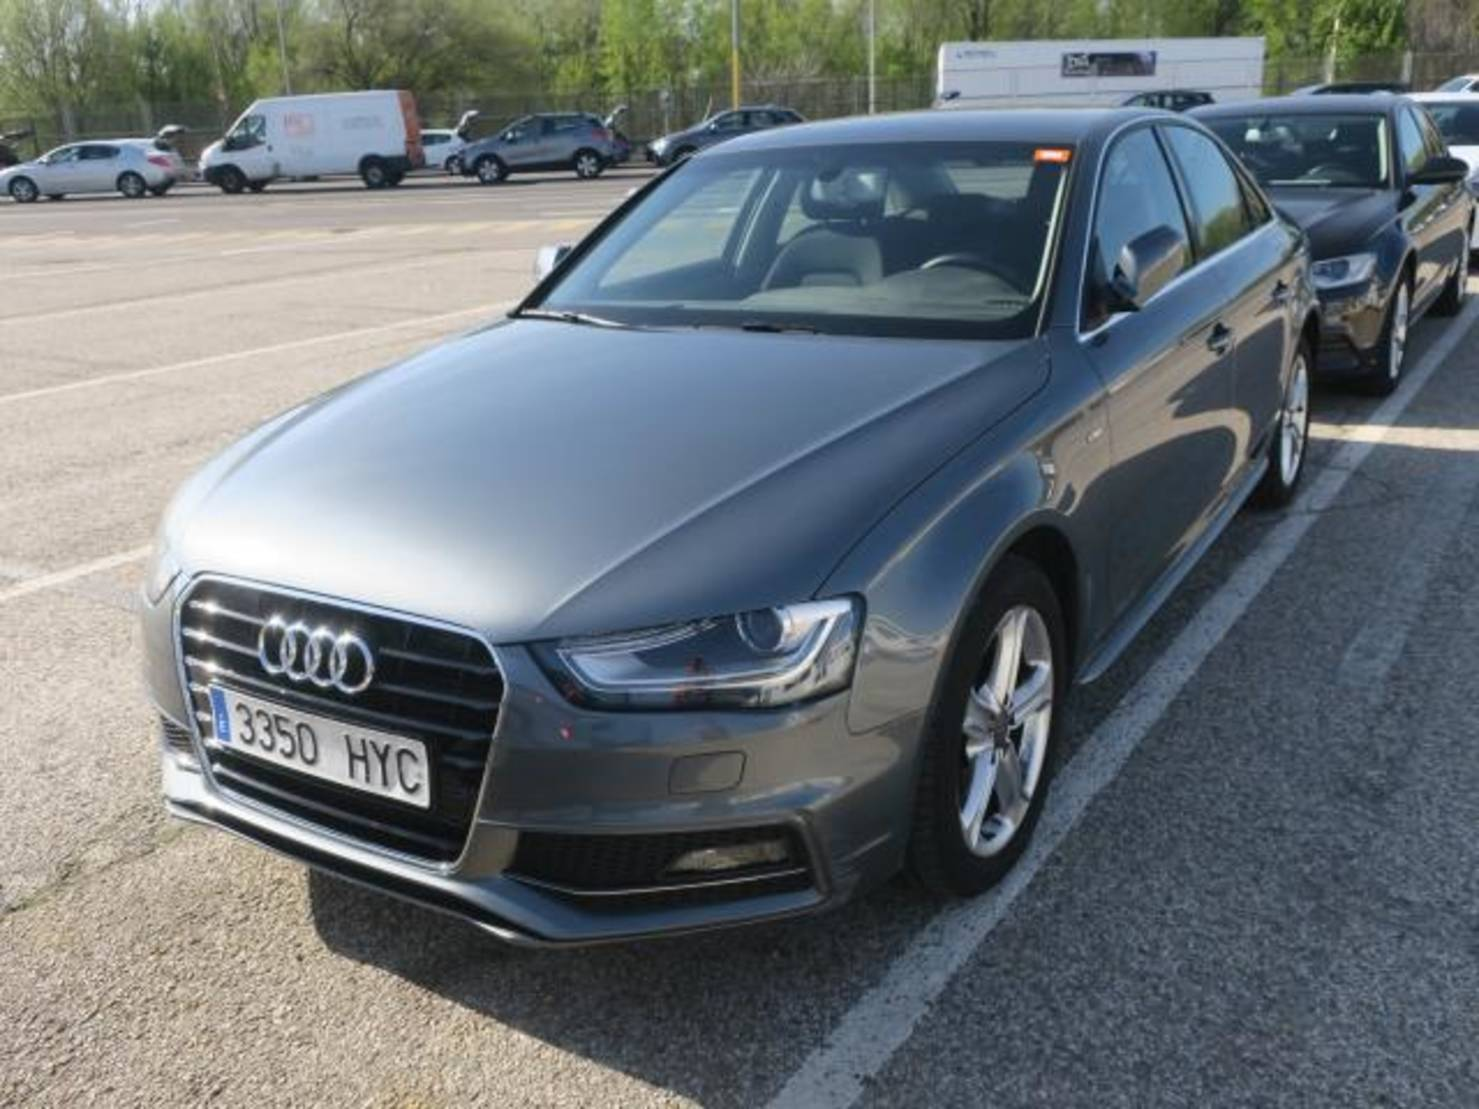 Audi A4 A4 2.0TDI DPF S line edition Mult. 150, S line edition detail1